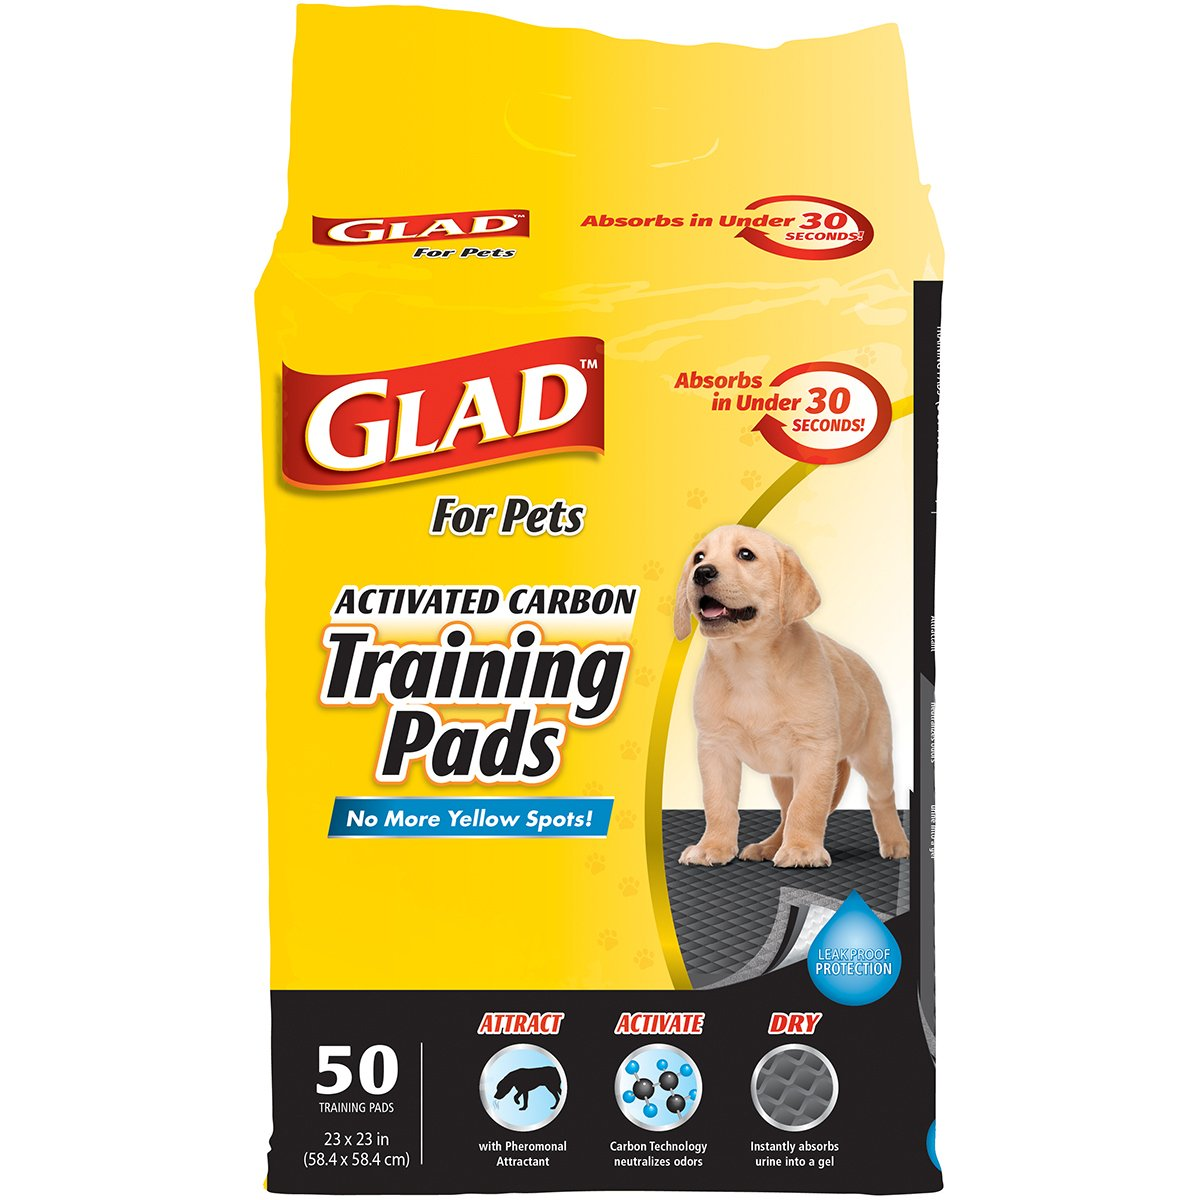 Glad for Pets Activated Carbon Dog Pee Pads   Best Puppy Pads For Absorbing Odor and Urine Quickly   Eliminates Urine Odor on Contact, 50 Count, Black